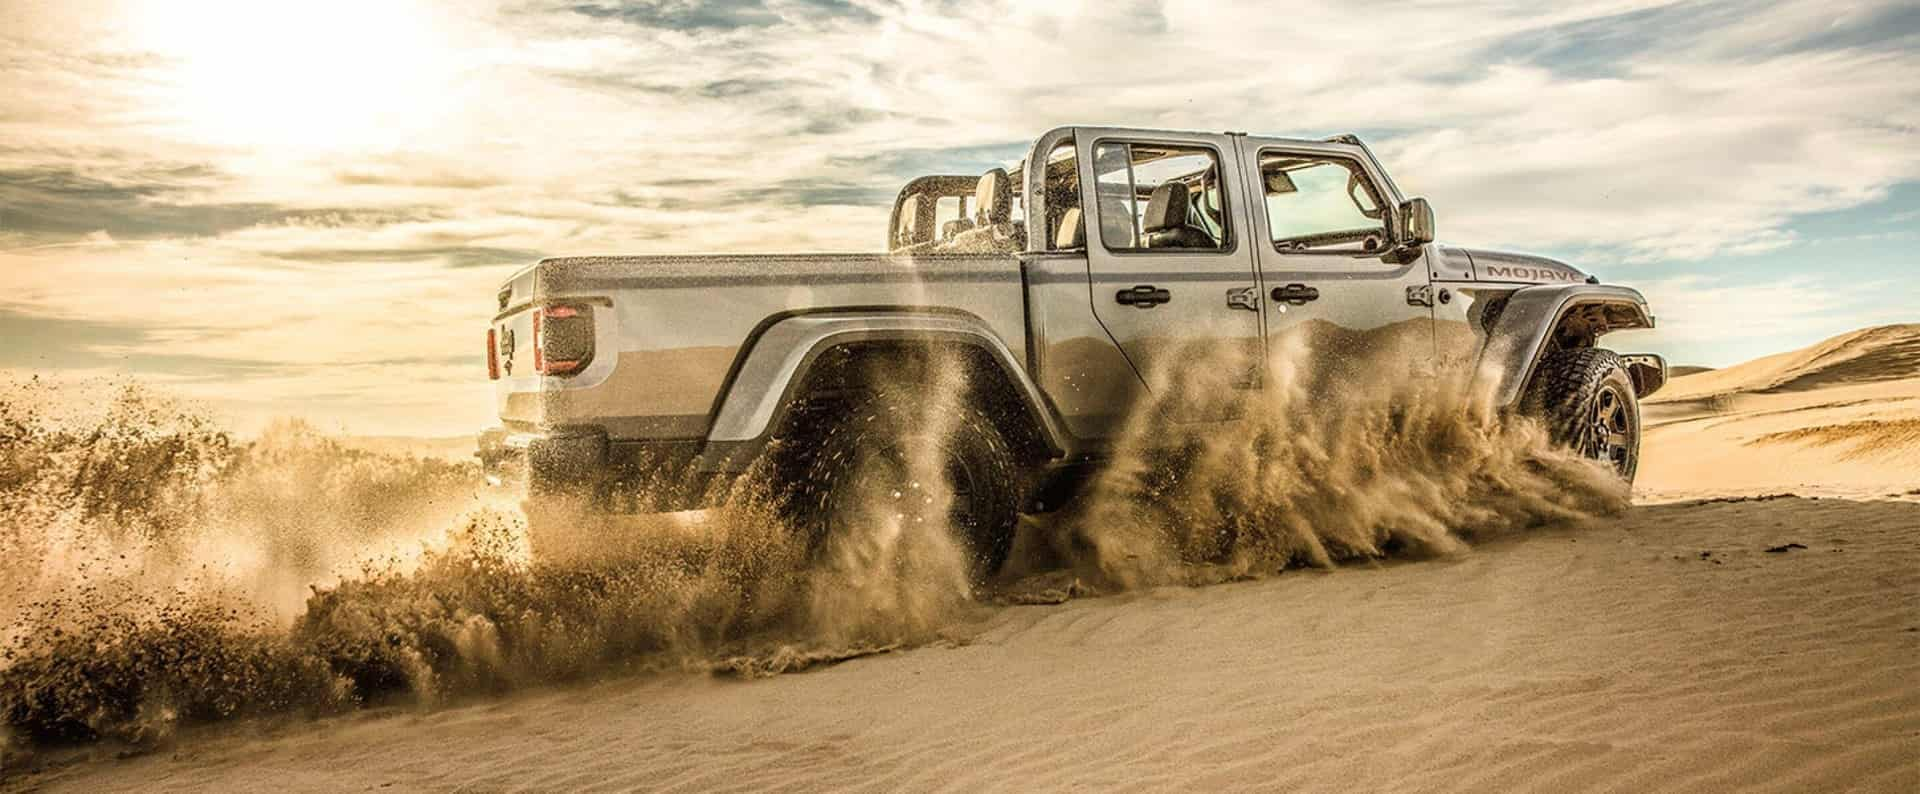 Boulder News - 2020 Jeep Gladiator Mojave